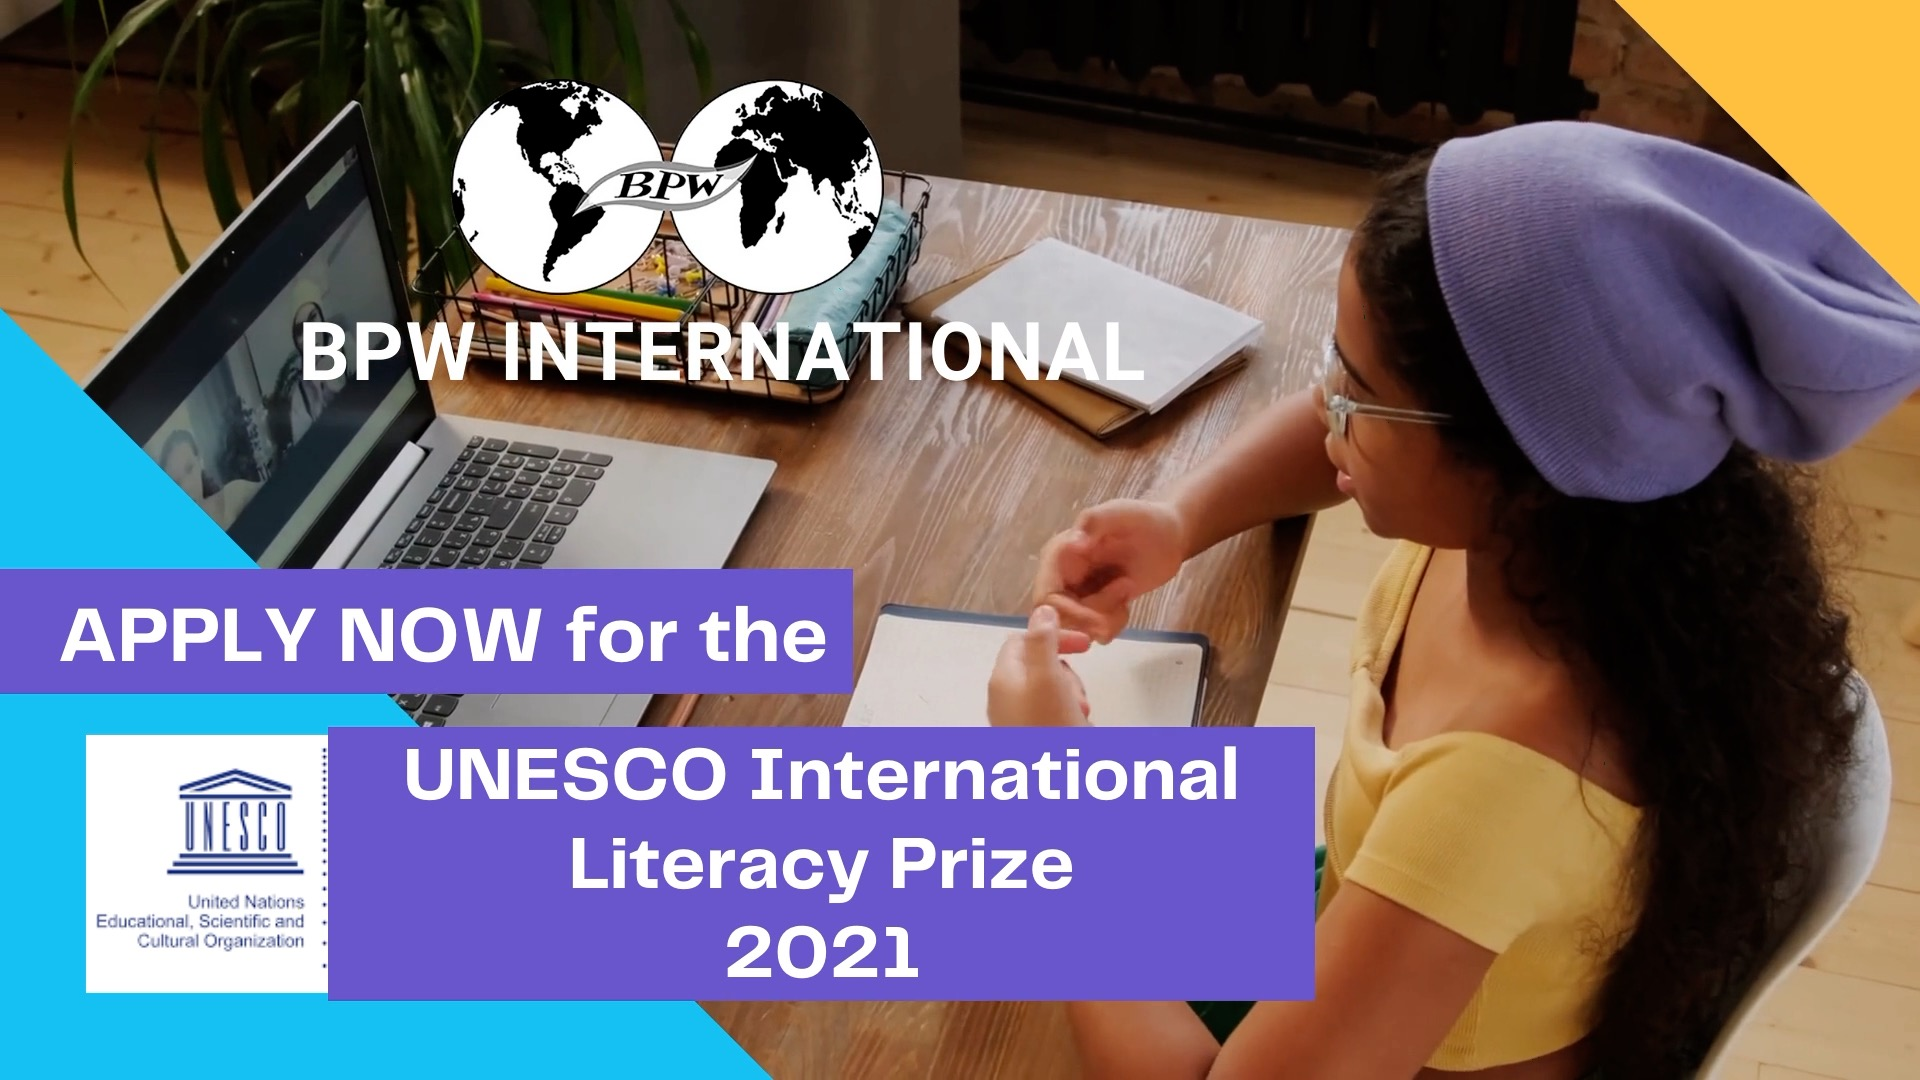 2021 UNESCO International Literacy Prizes - Call for Nominations